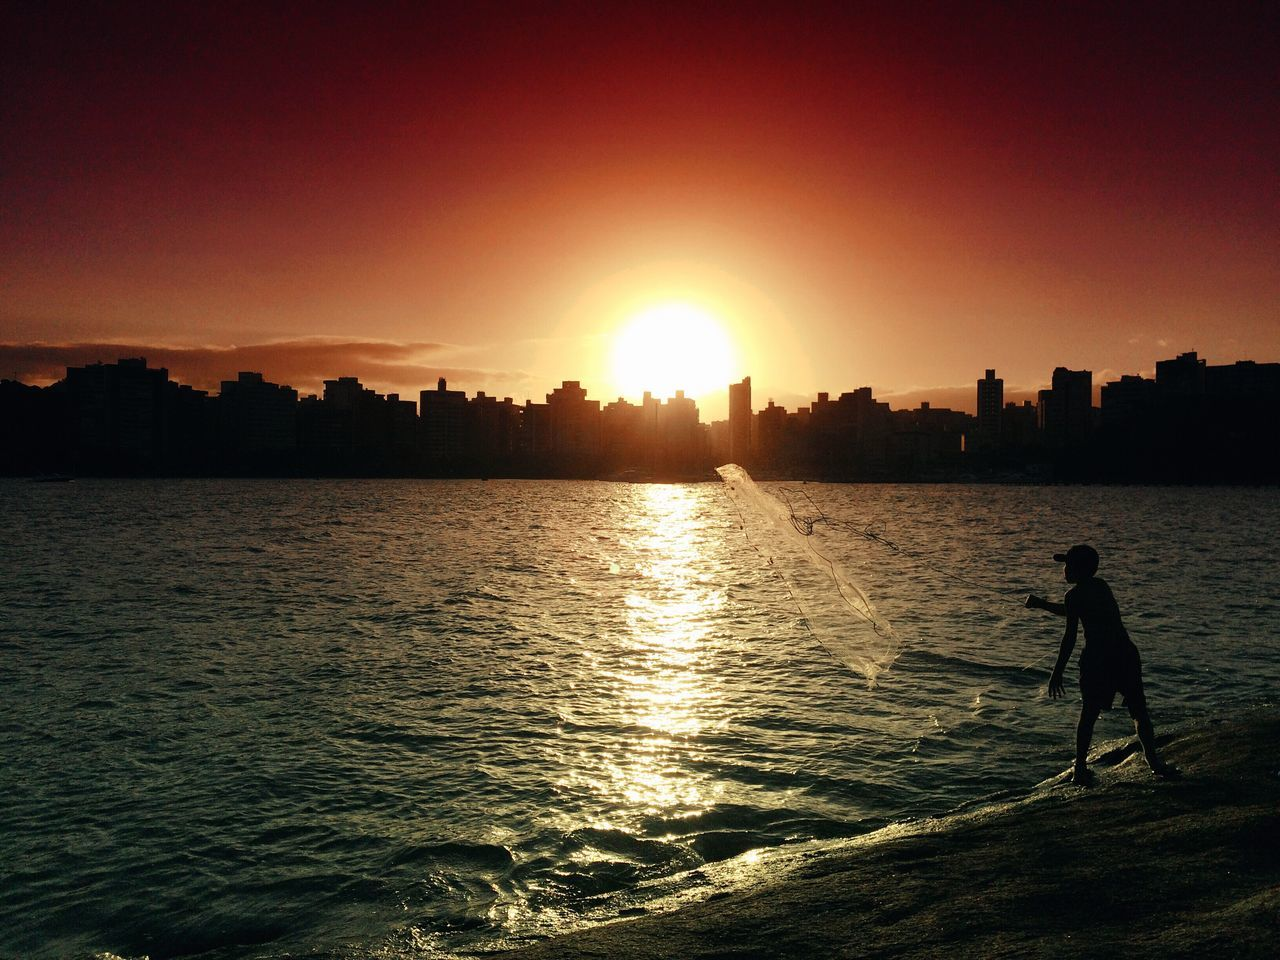 Rear View Of Silhouette Boy Throwing Fishing Net In River At Sunset